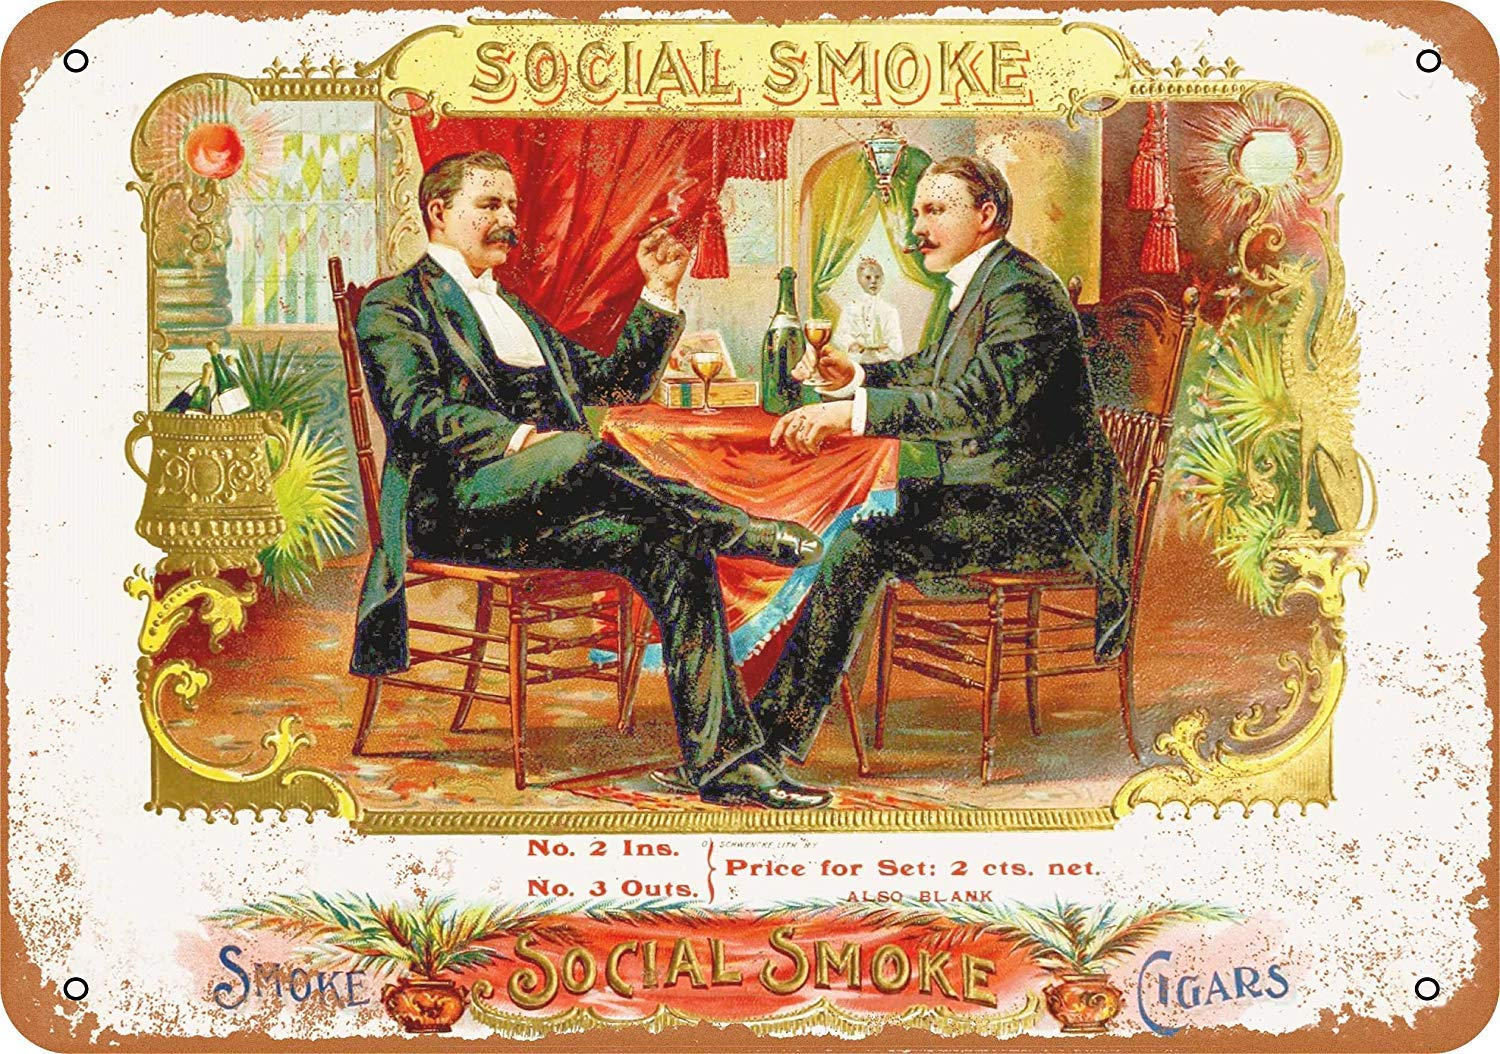 Social Smoke Cigars Placa Cartel Vintage Estaño Signo Metal ...